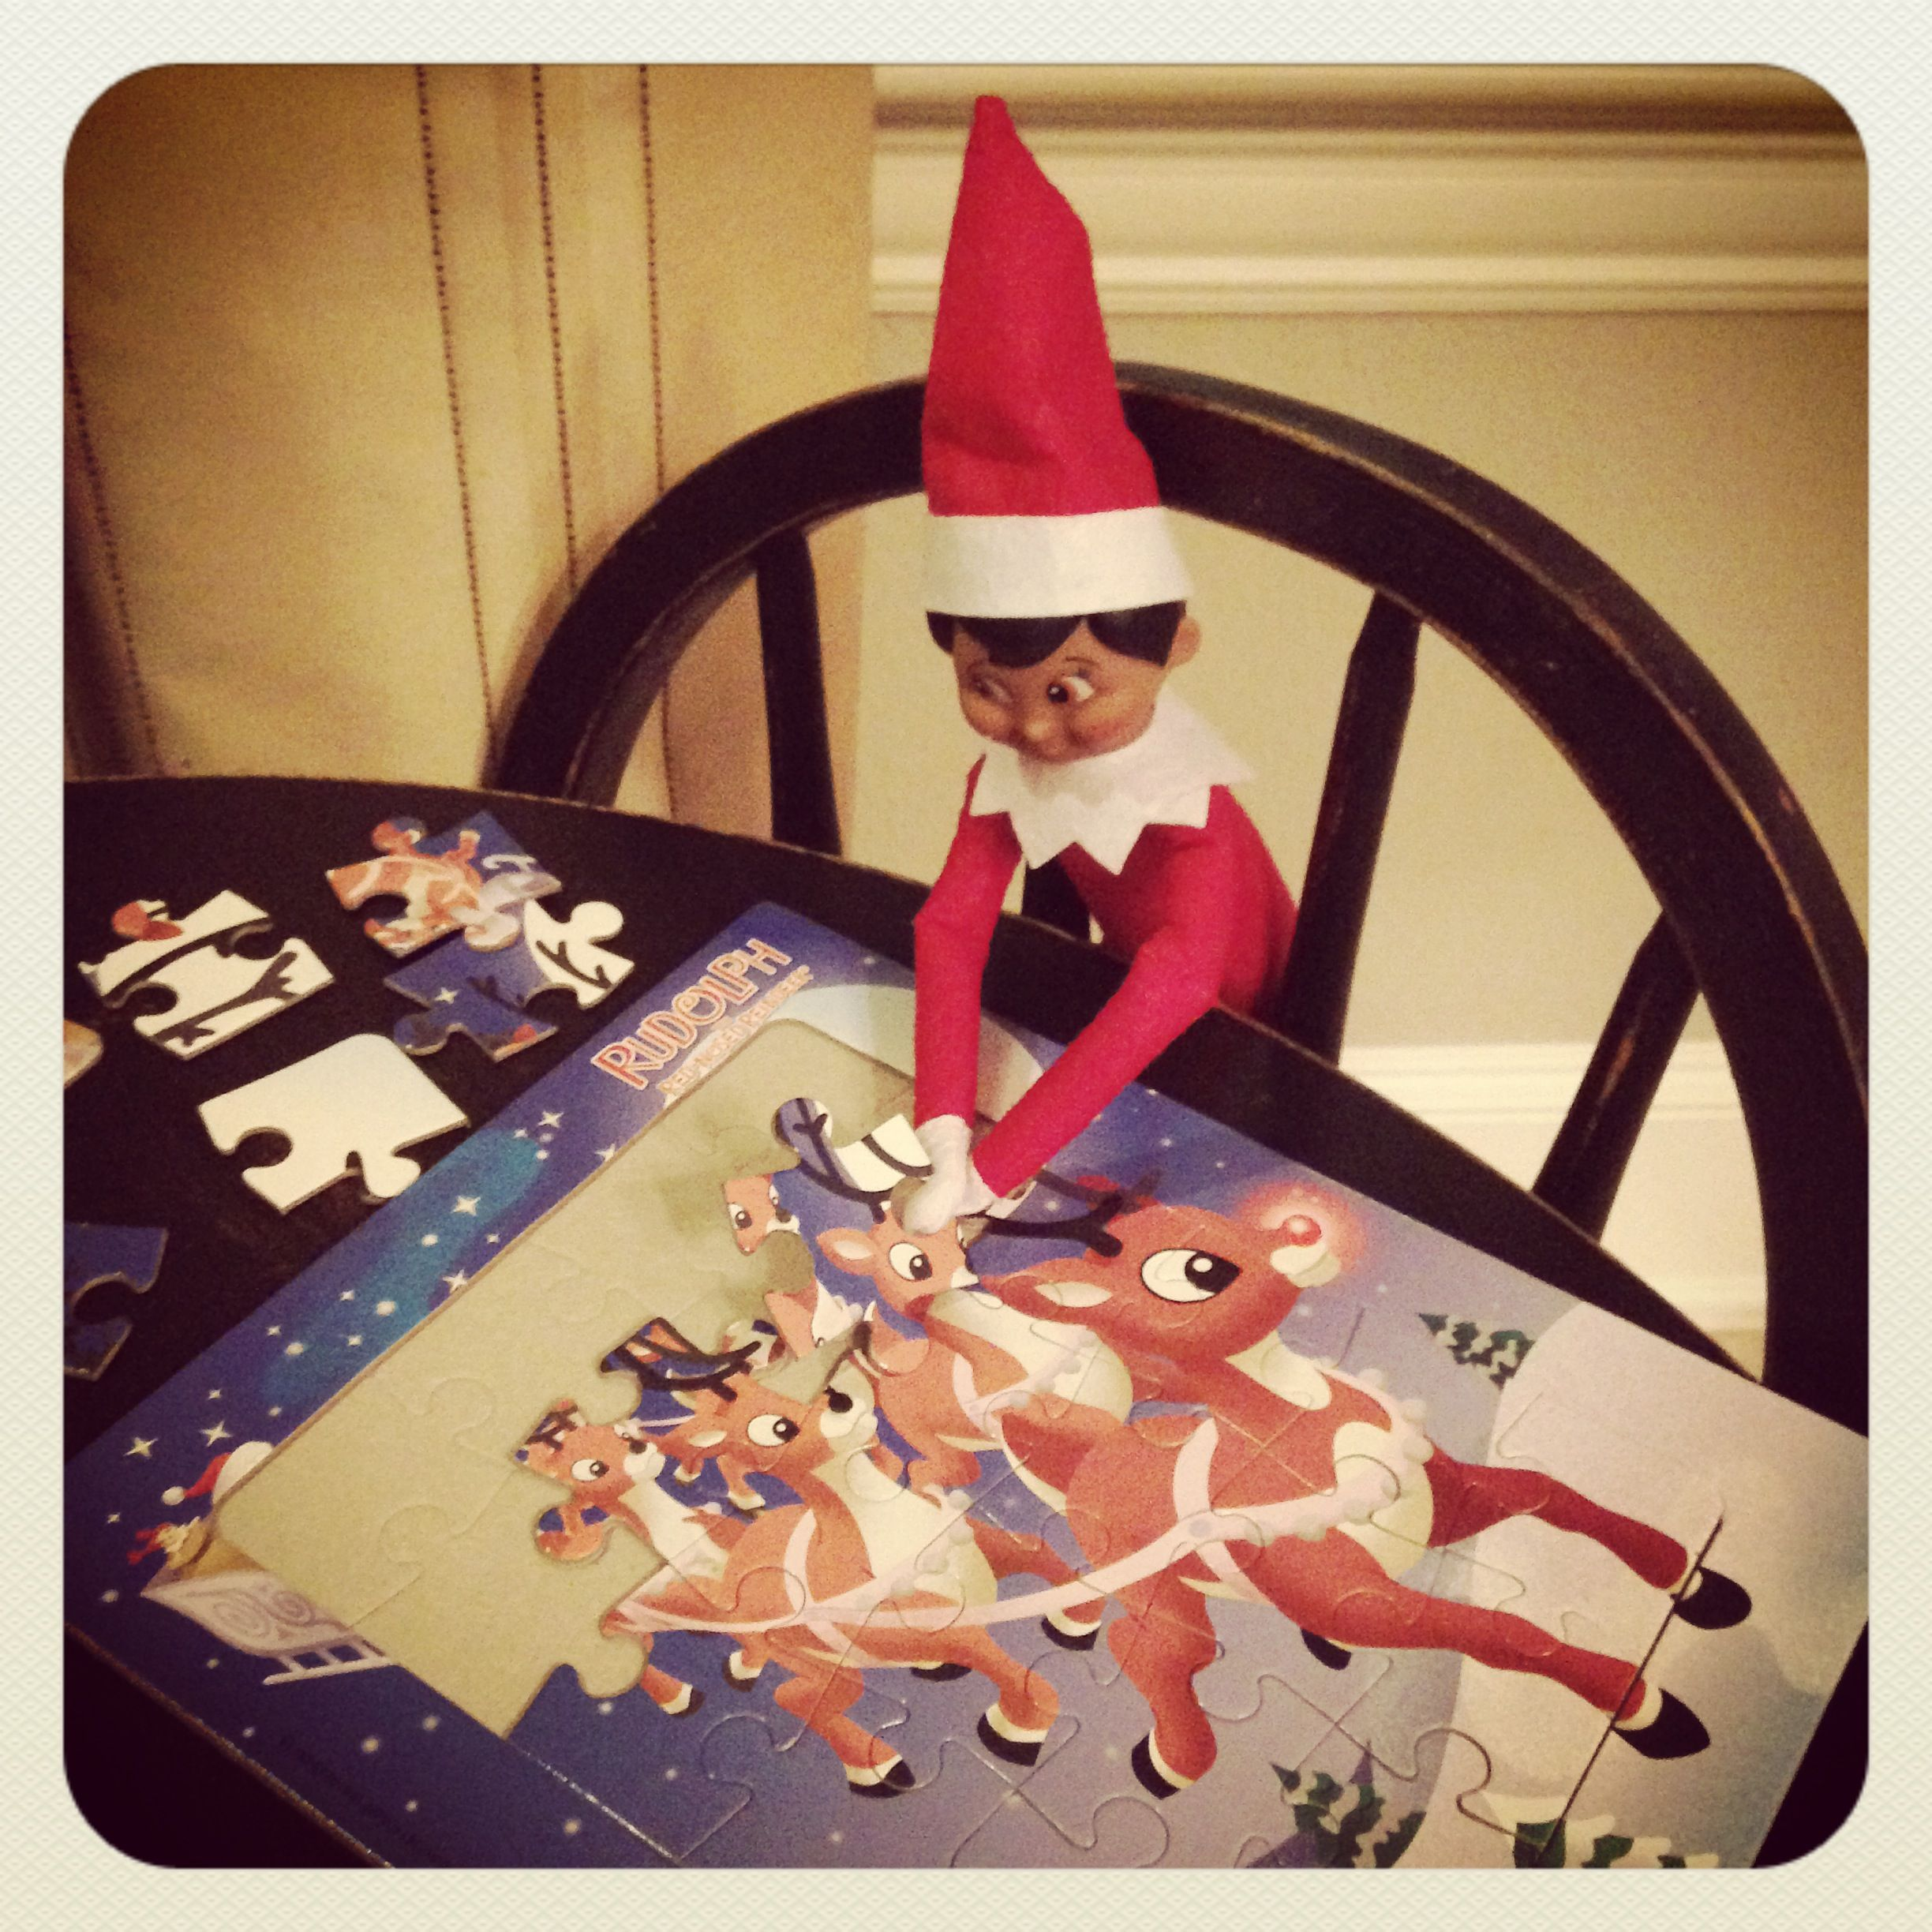 Elf on the Shelf Breakfast - House of Hargrove